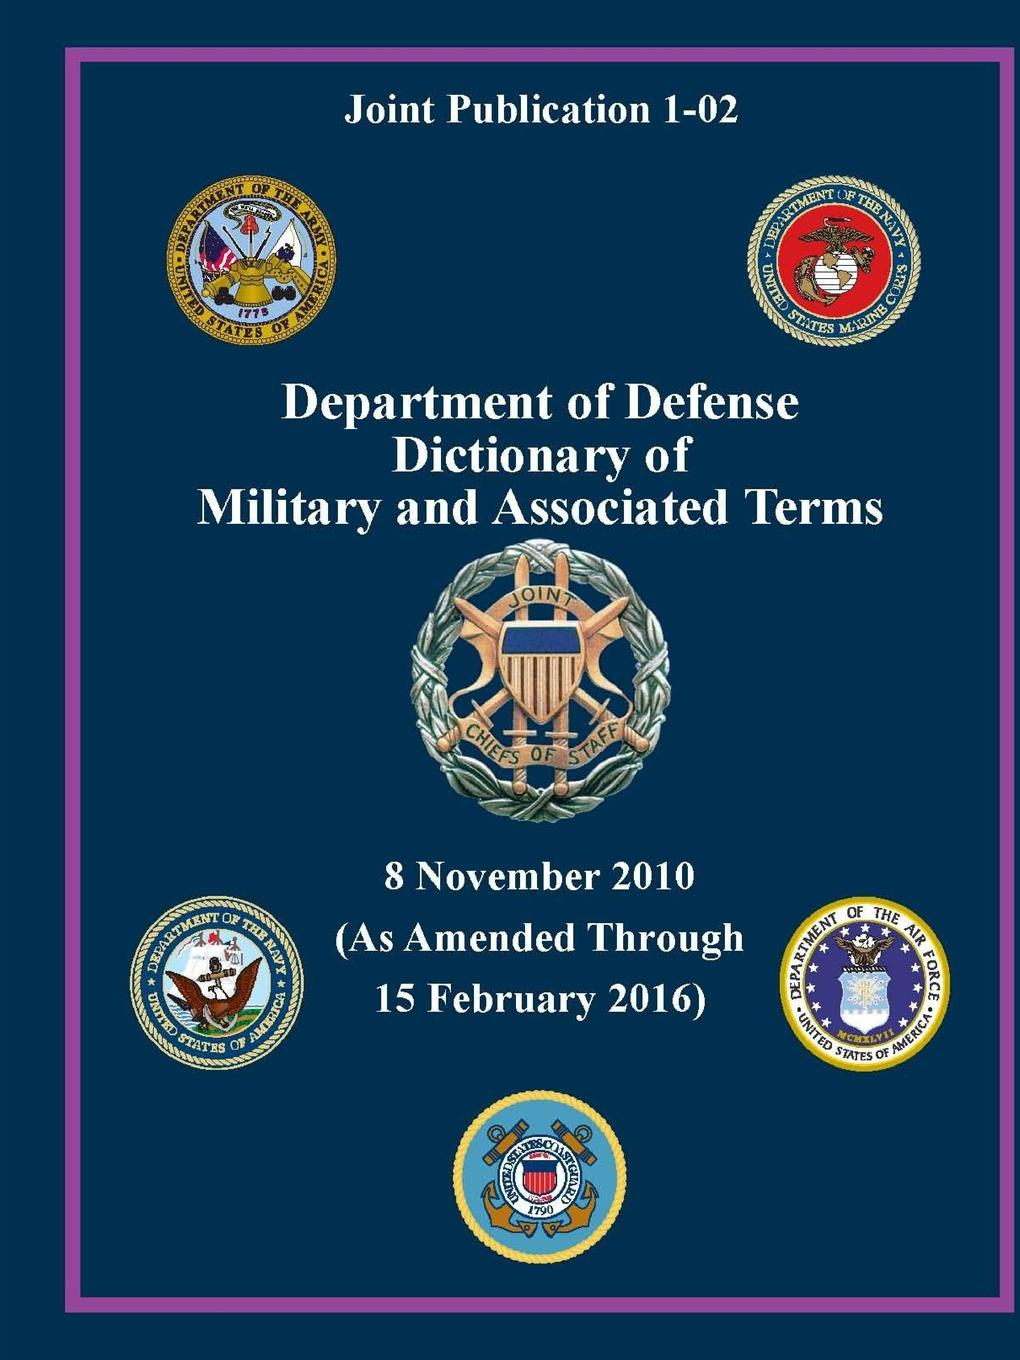 U.S. Department of Defense Department of Defense Dictionary of Military and Associated Terms - As Amended Through 15 February 2016 - (Joint Publication 1-02) ( a dictionary of military terms